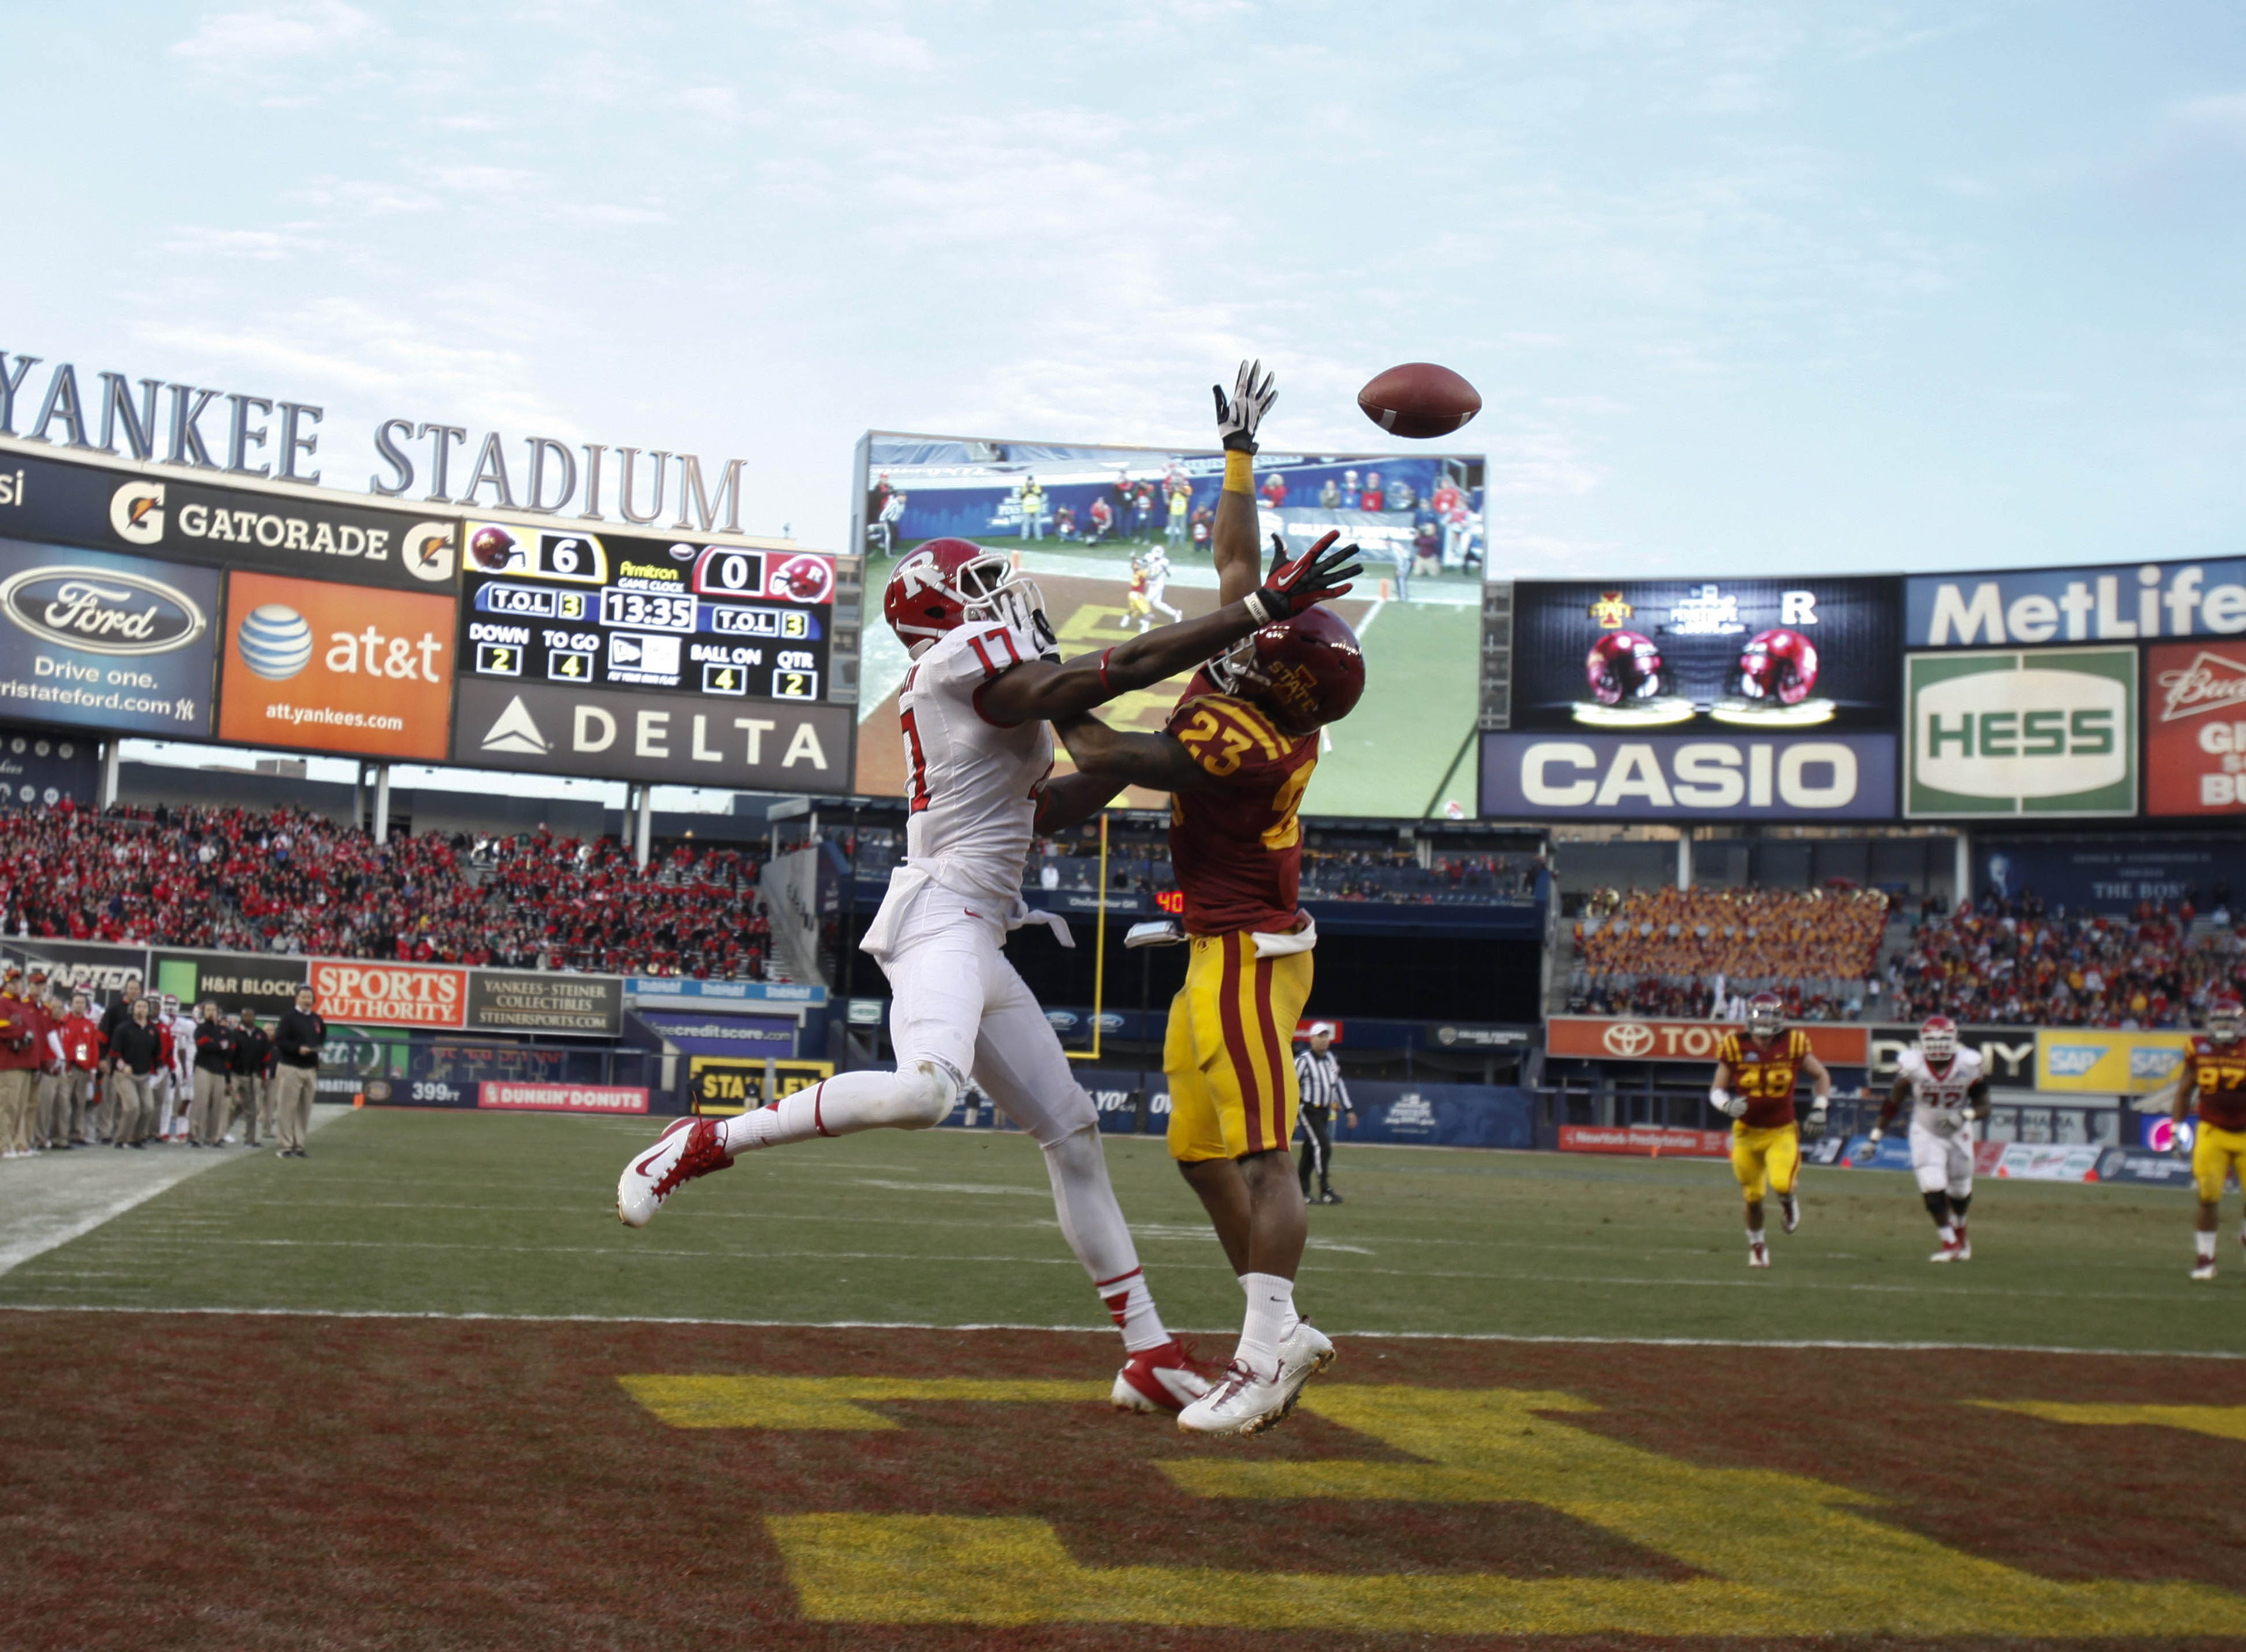 Rutgers wide receiver Brandon Coleman and Iowa State defensive back Leonard Johnson battle for the football in the end zone during the first half of the Pinstripe Bowl game played on Friday afternoon in New York City. The play ended in an incomplete pass. The Scarlet Knights beat the Cyclones 27-13.